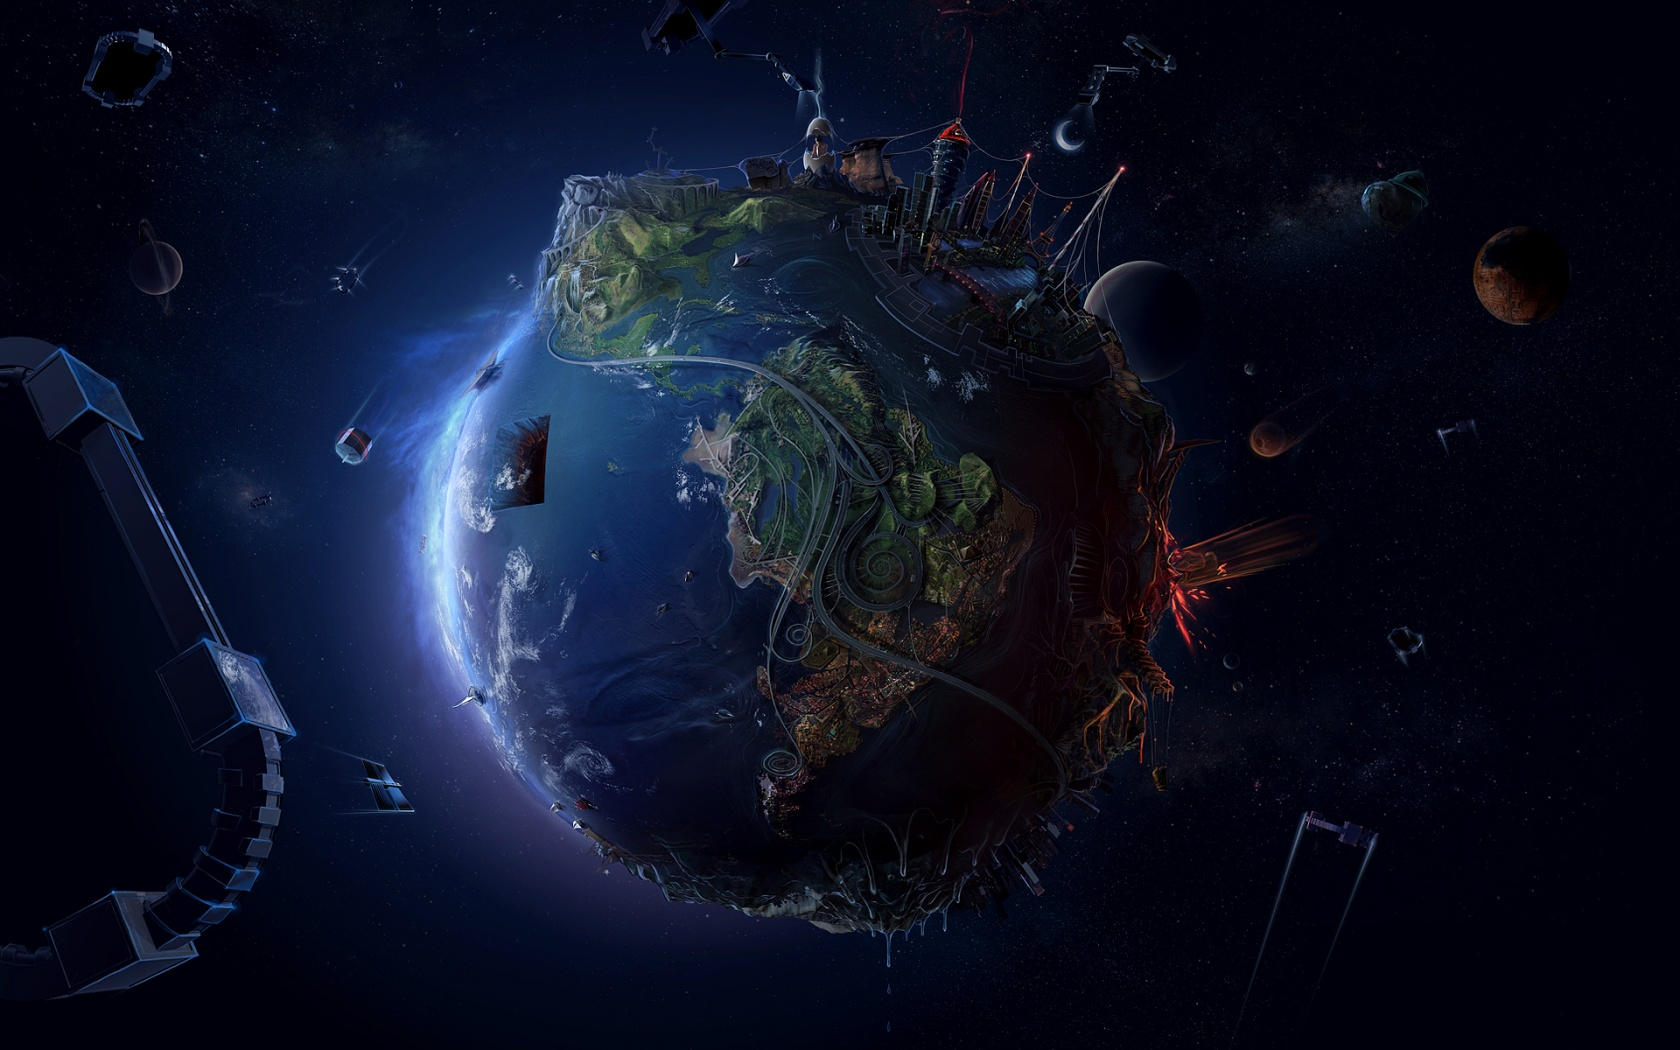 Wallpapers Of The World